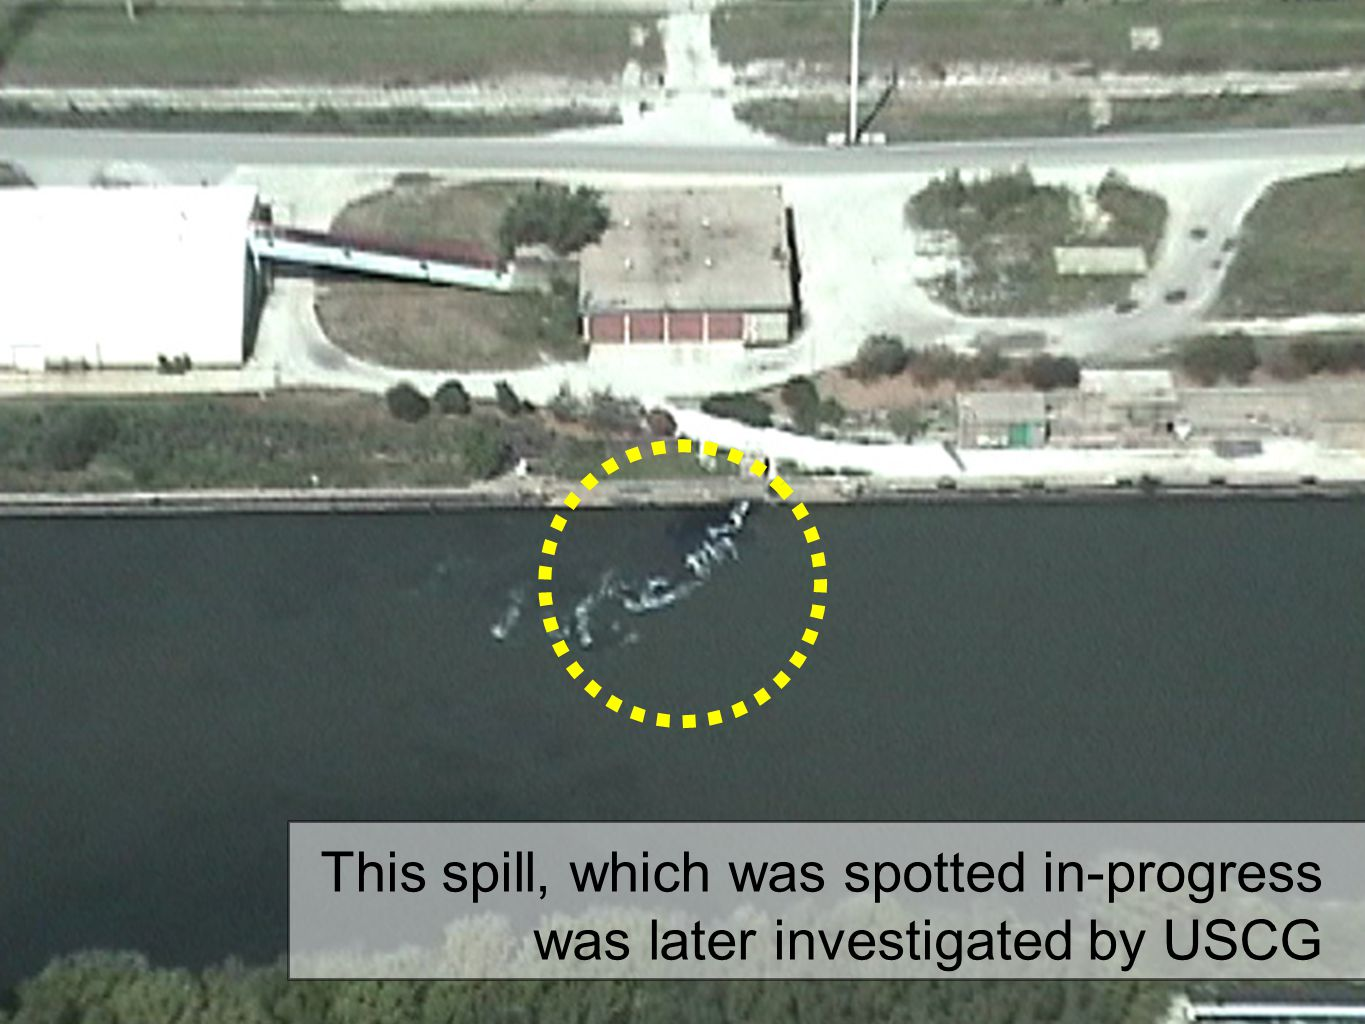 This spill, which was spotted in-progress was later investigated by USCG